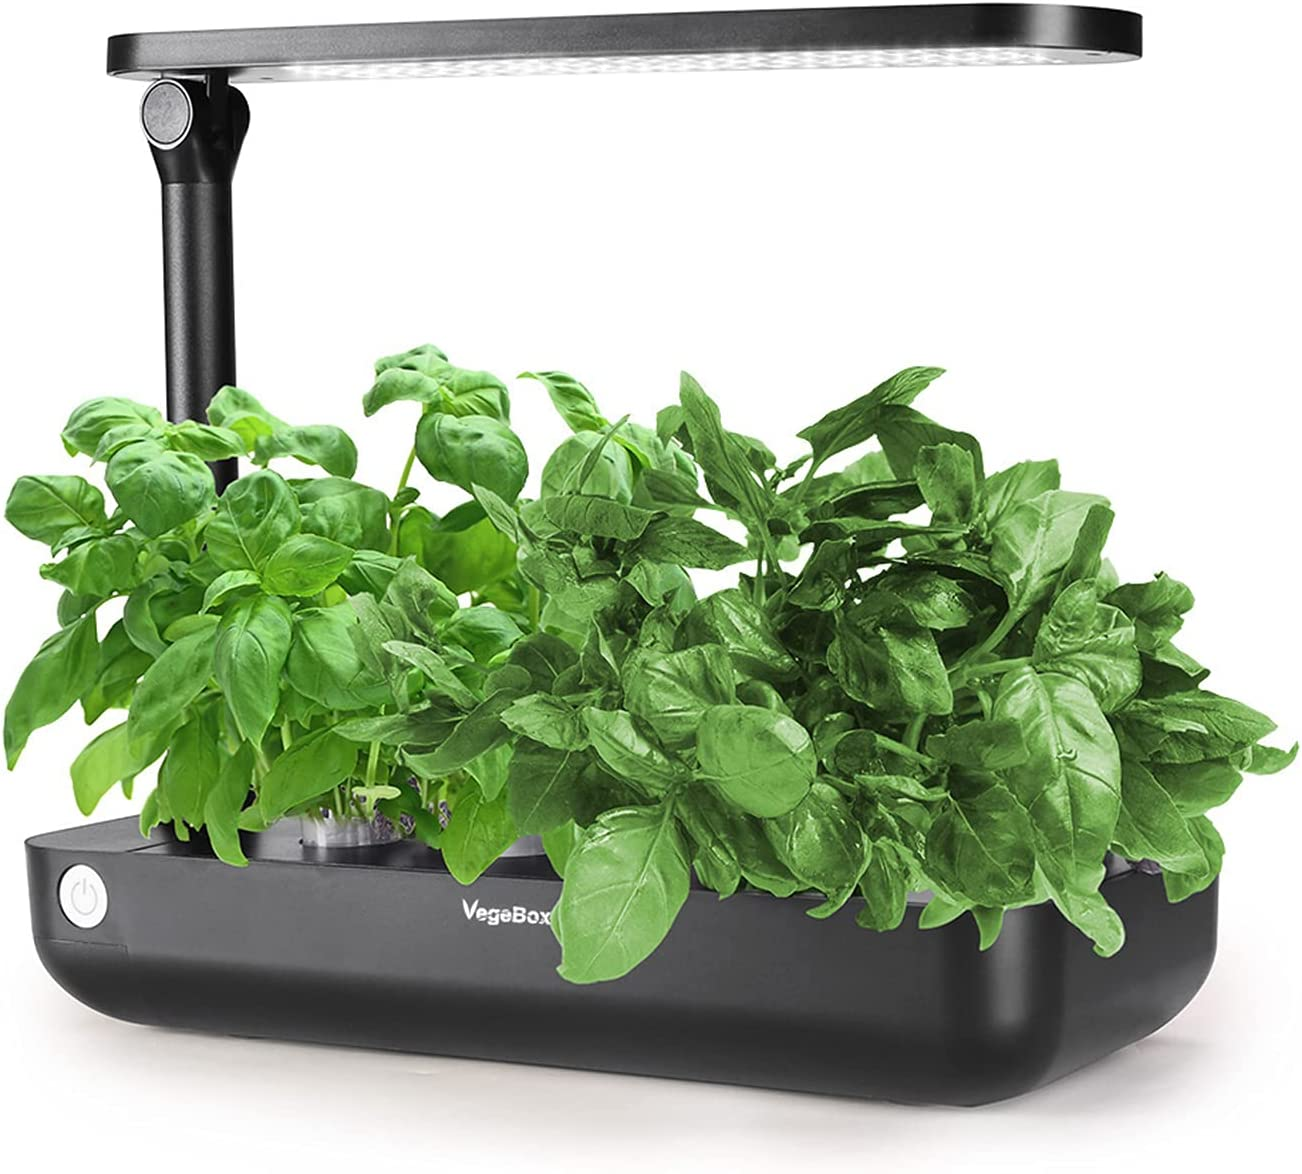 Vegebox Indoor Herb Garden - 9 Pods Hydroponic Growing System with Plant Starter Kit, Nutrient Water A B